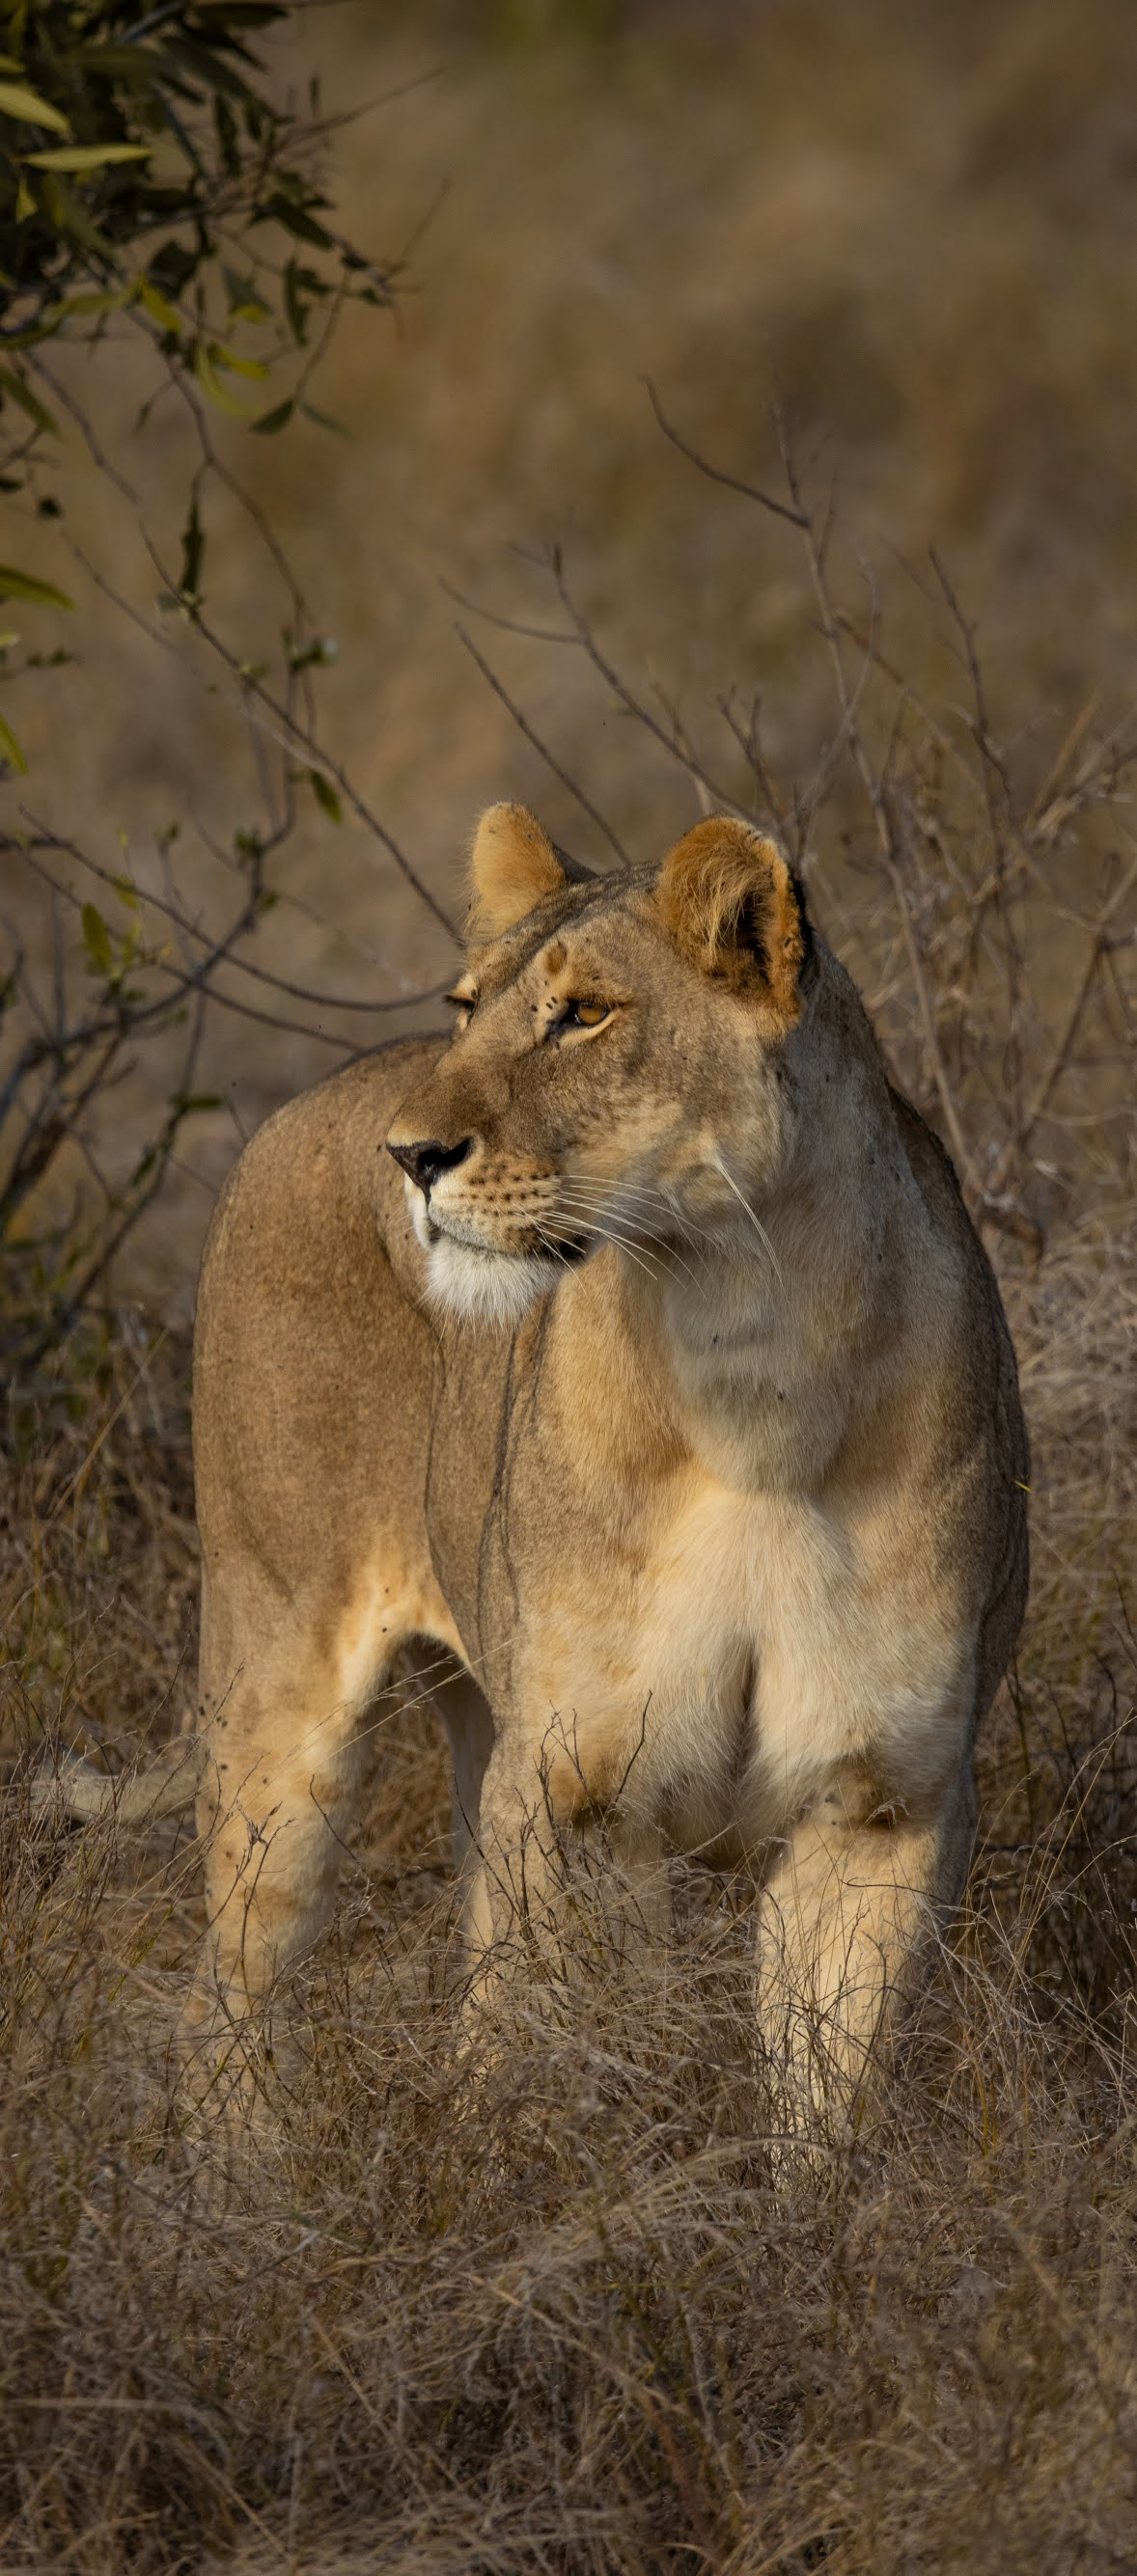 Lioness in the African savanna.